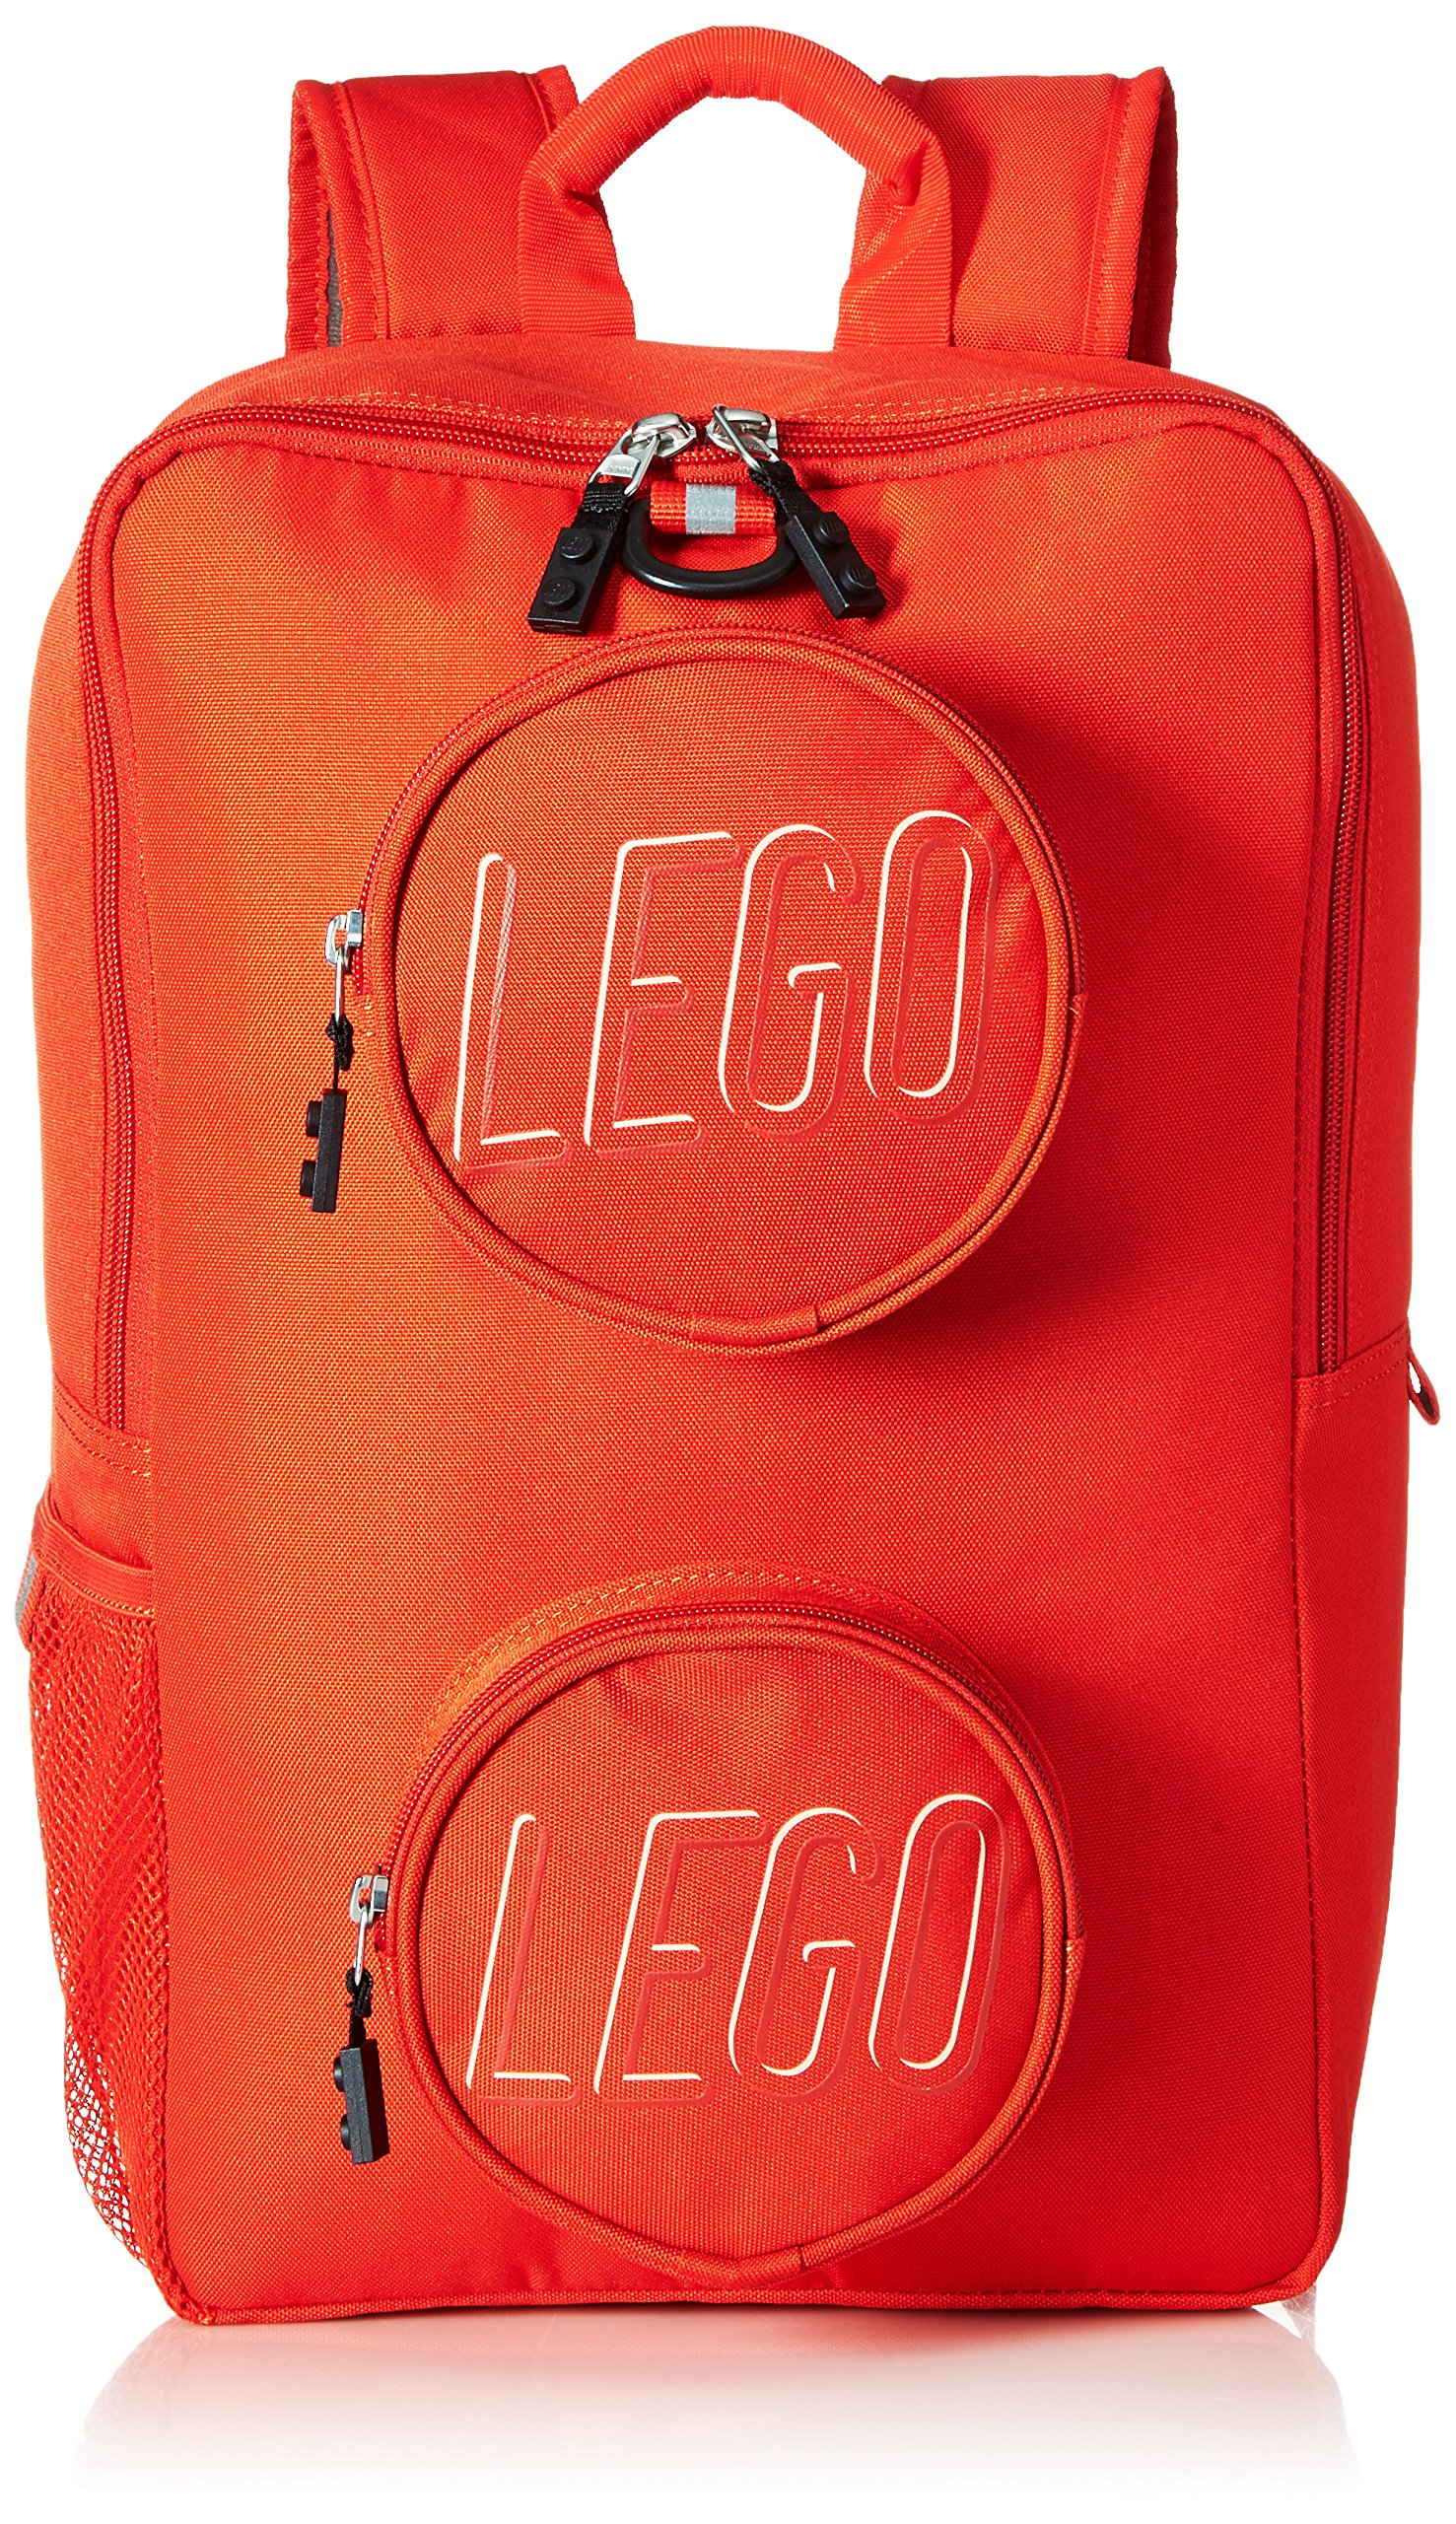 LEGO Brick Backpack-Red by LEGO